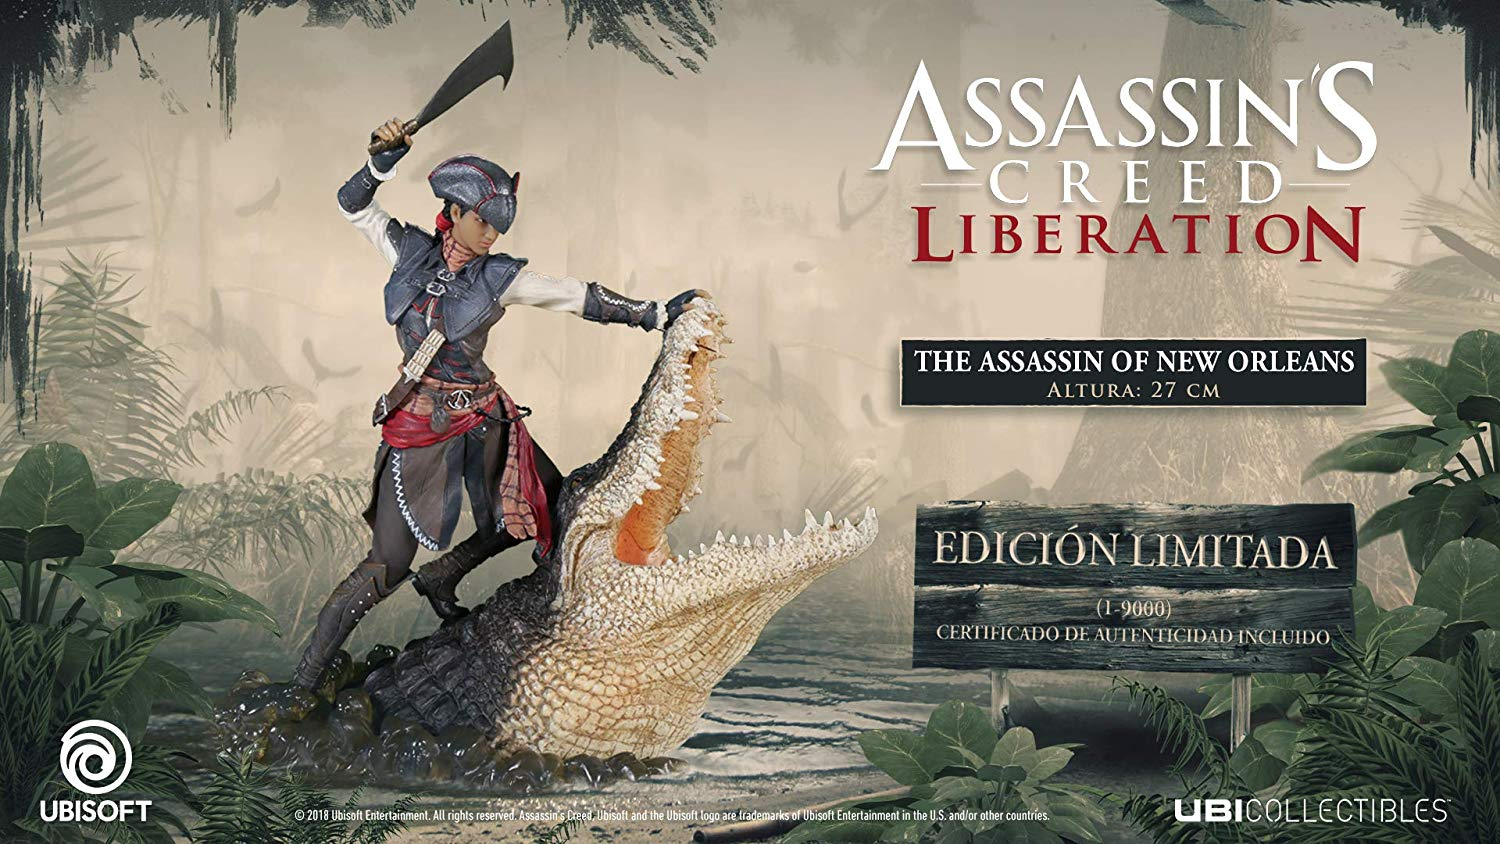 Assassin's Creed Liberation: The Assassin of New Orleans